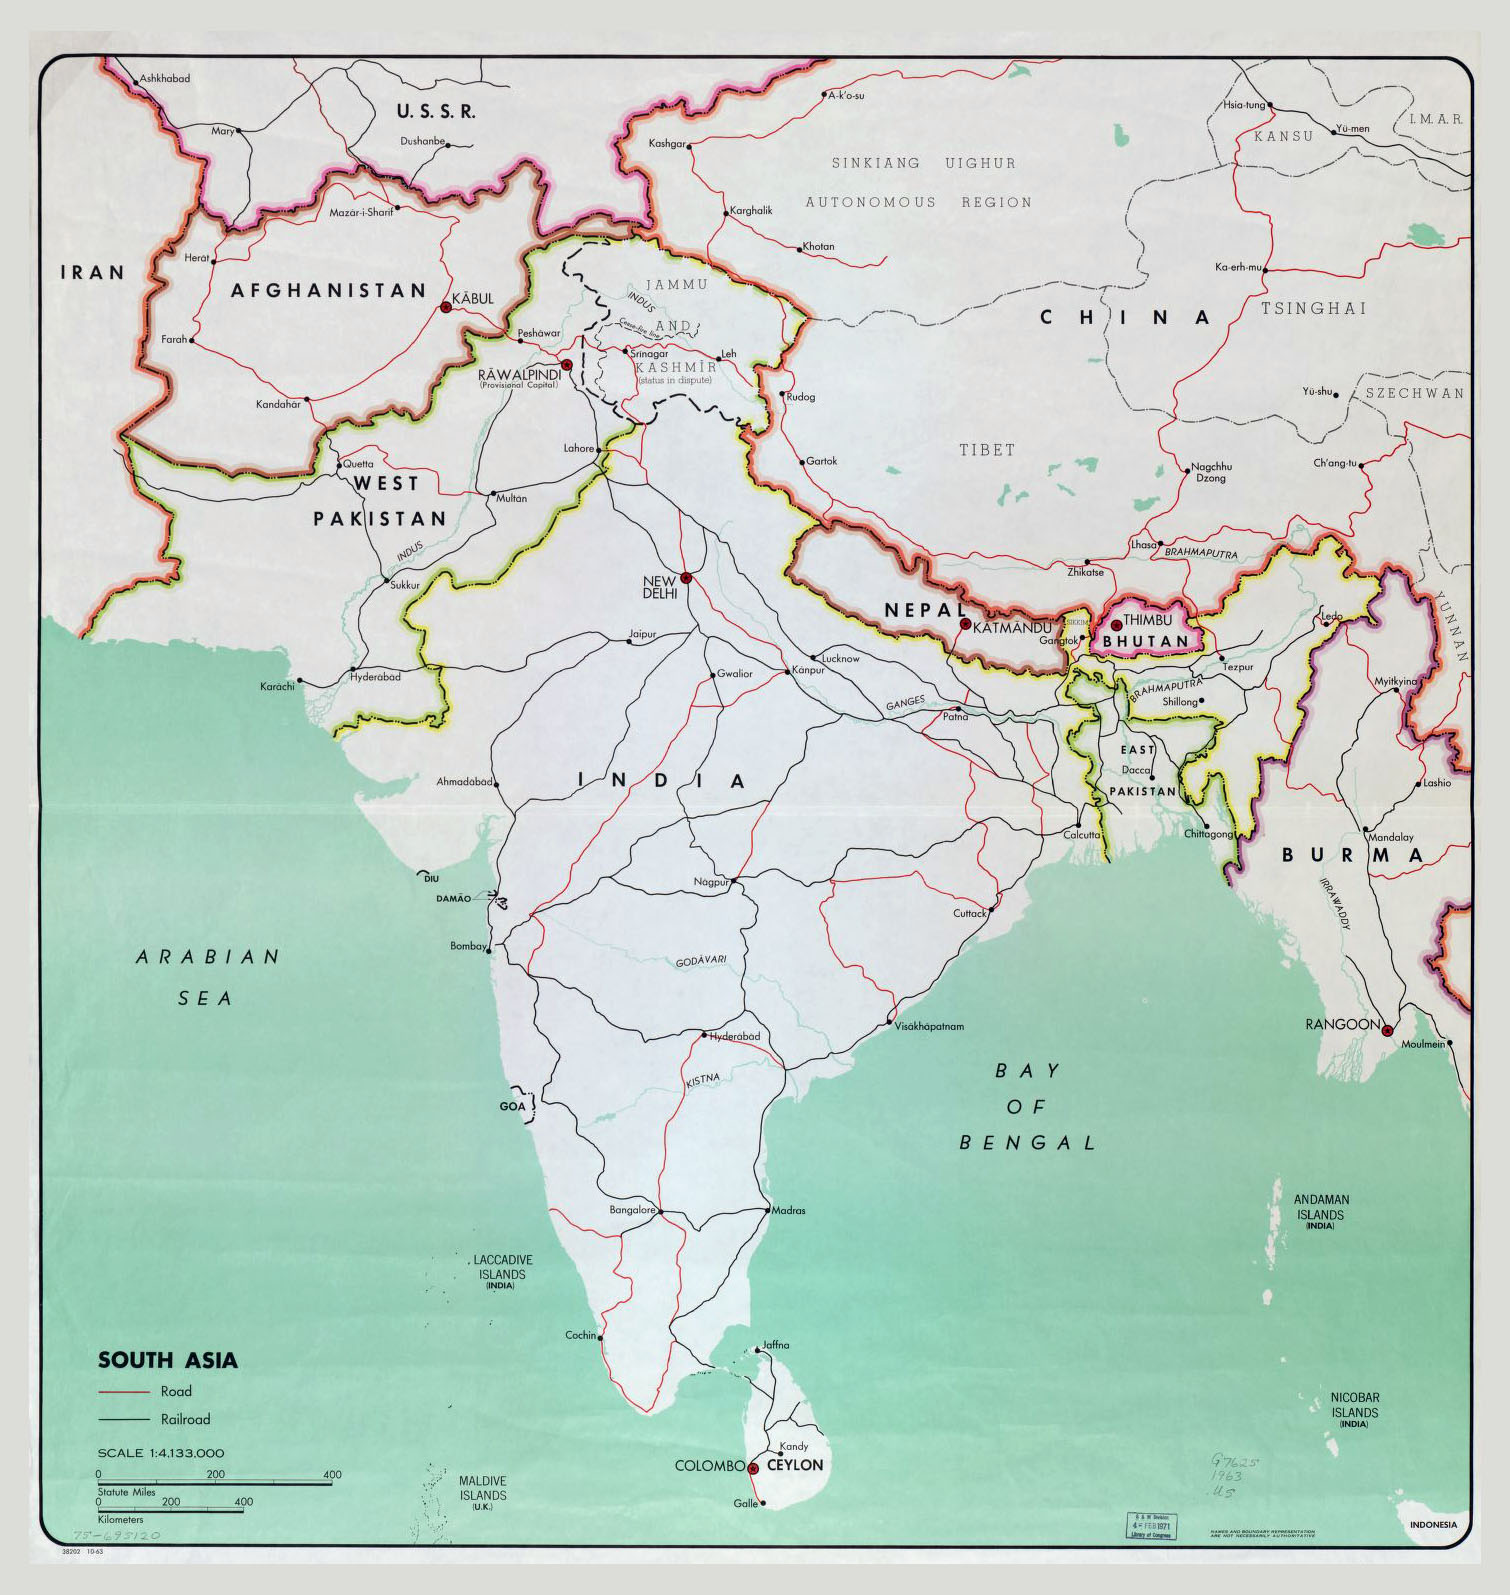 Large Map Of South Asia With Major Cities Roads And Railroads - South asia map